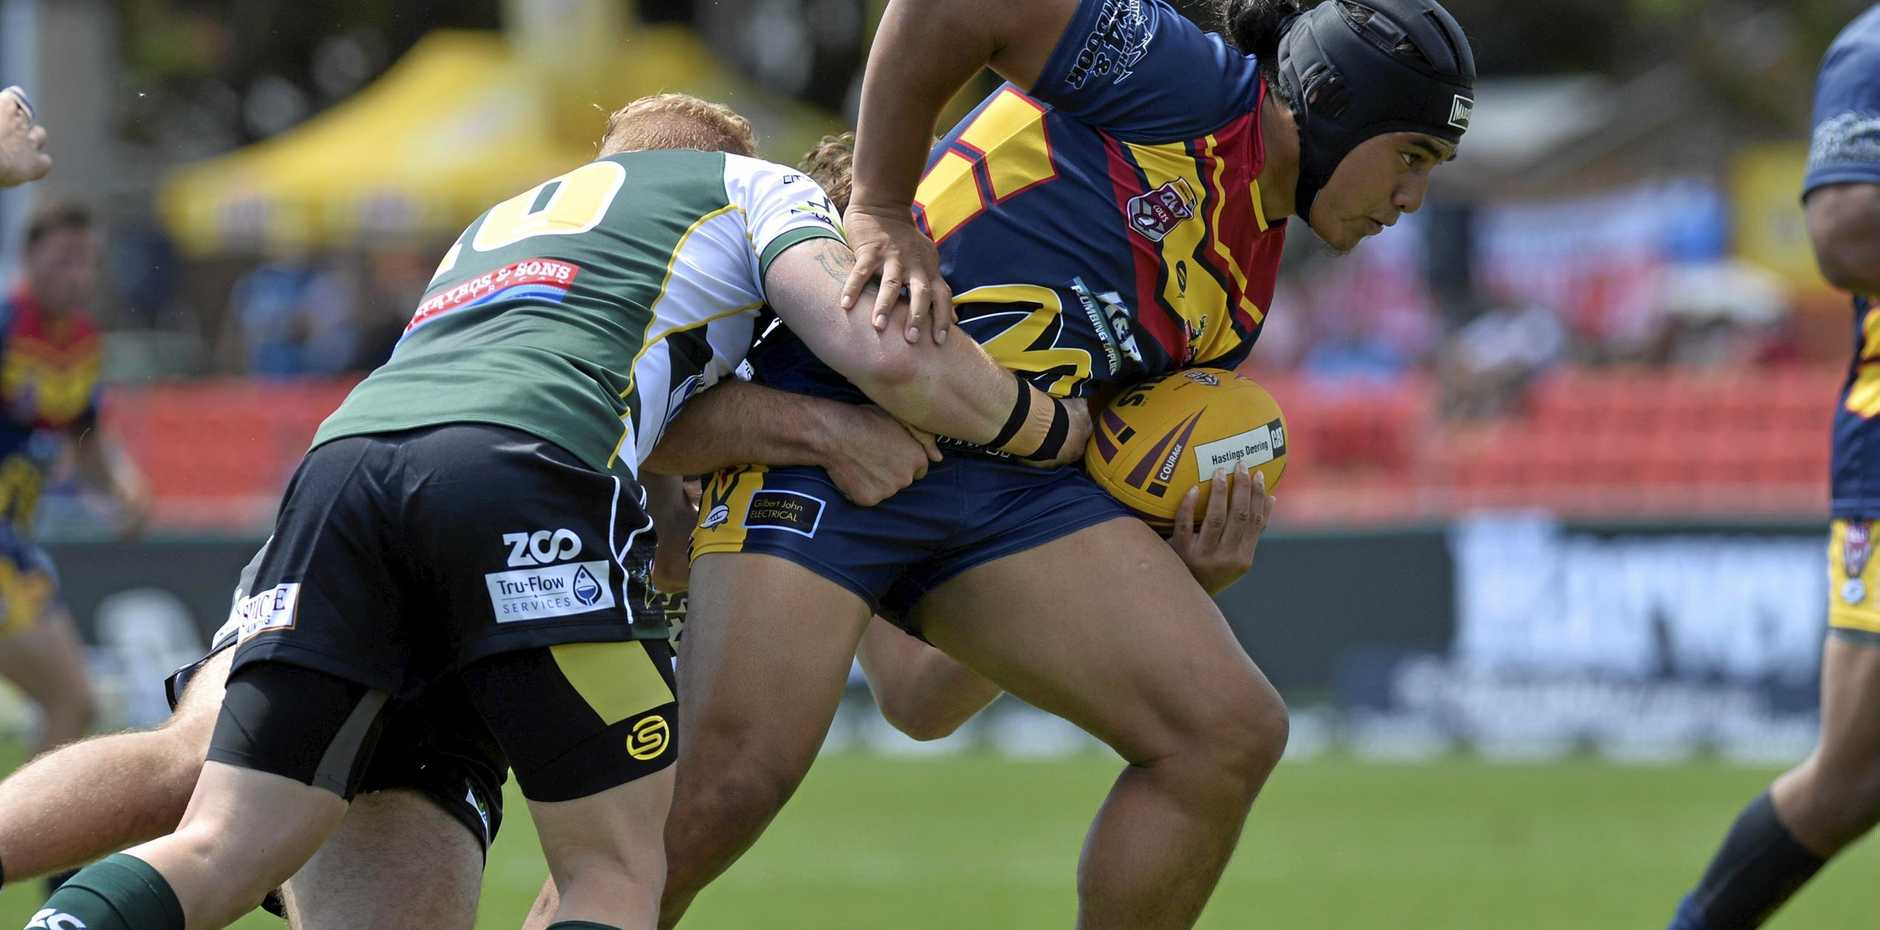 COMEBACK FALLS SHORT: Western Mustangs centre Tuia Eliu crossed the line as his side mounted a charge against the Norths Devils at Bishop Park on Saturday.